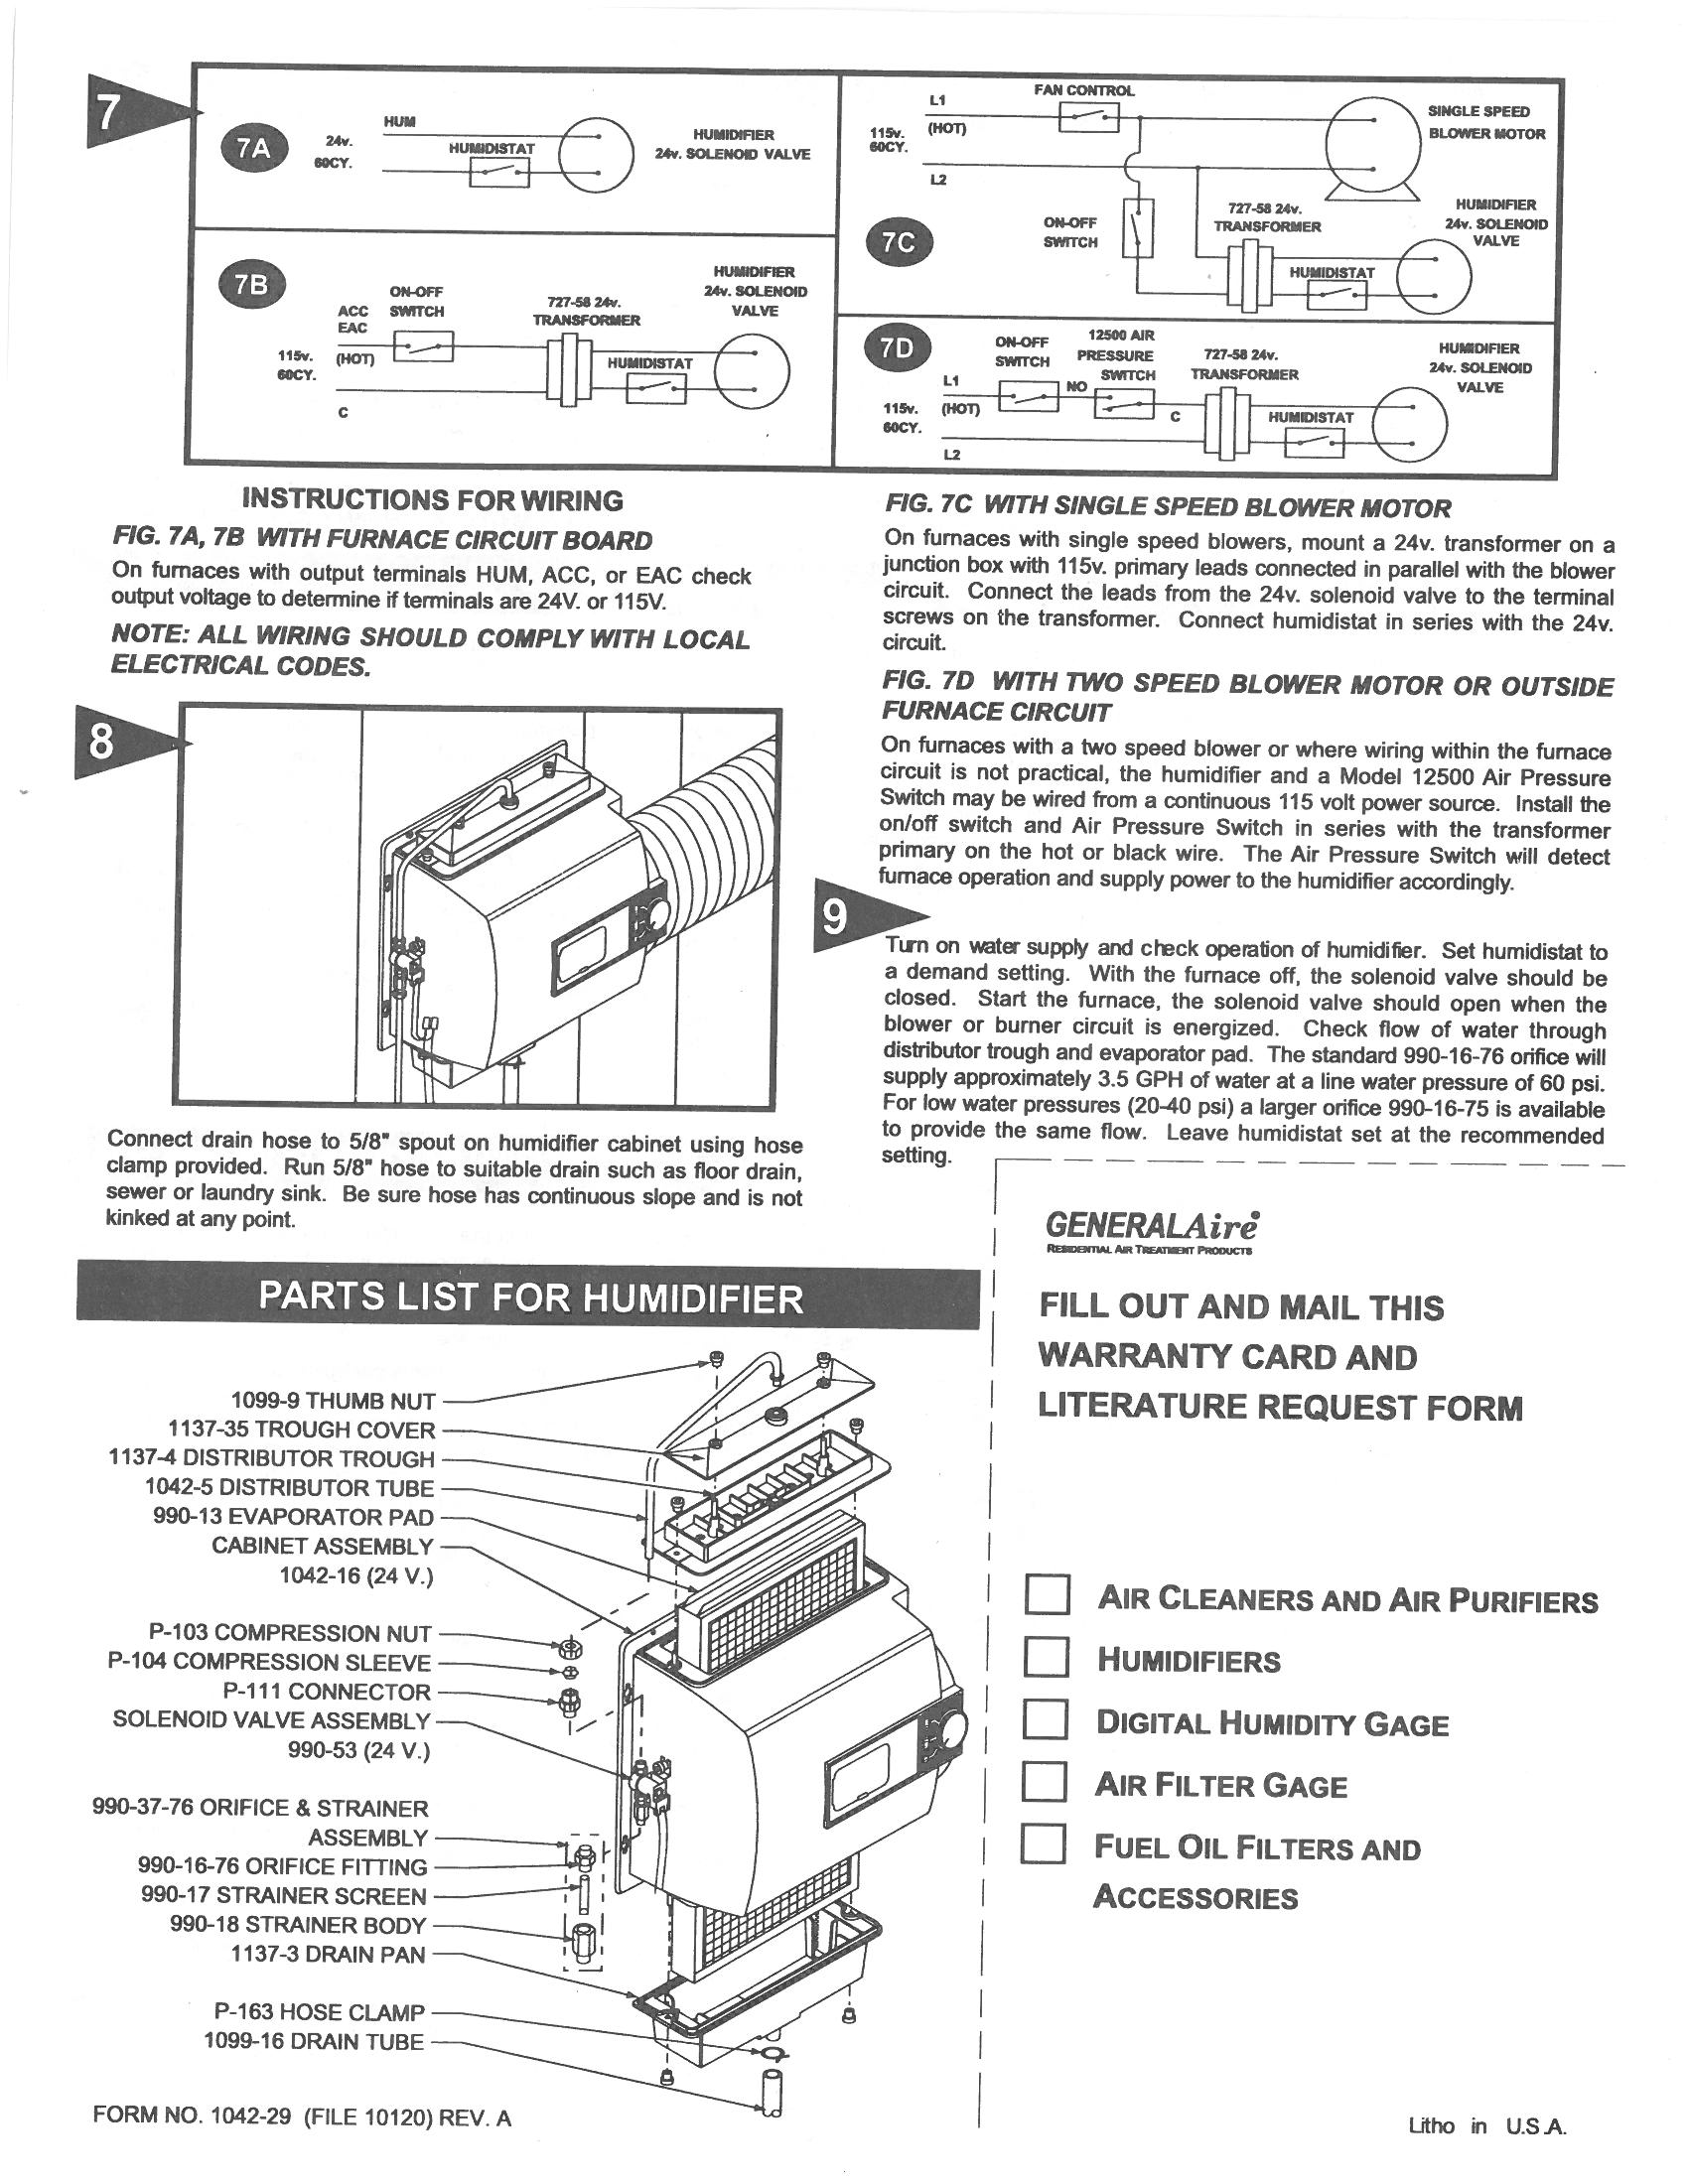 General 1137 Wiring Diagram. generalaire humidifier model 81 motor not  working. instructions for wiring humidifier e series humidistat. need help  wiring aprilaire 400 with generalaire mhx3. generalaire m3 manuel d 39  utilisation2002-acura-tl-radio.info